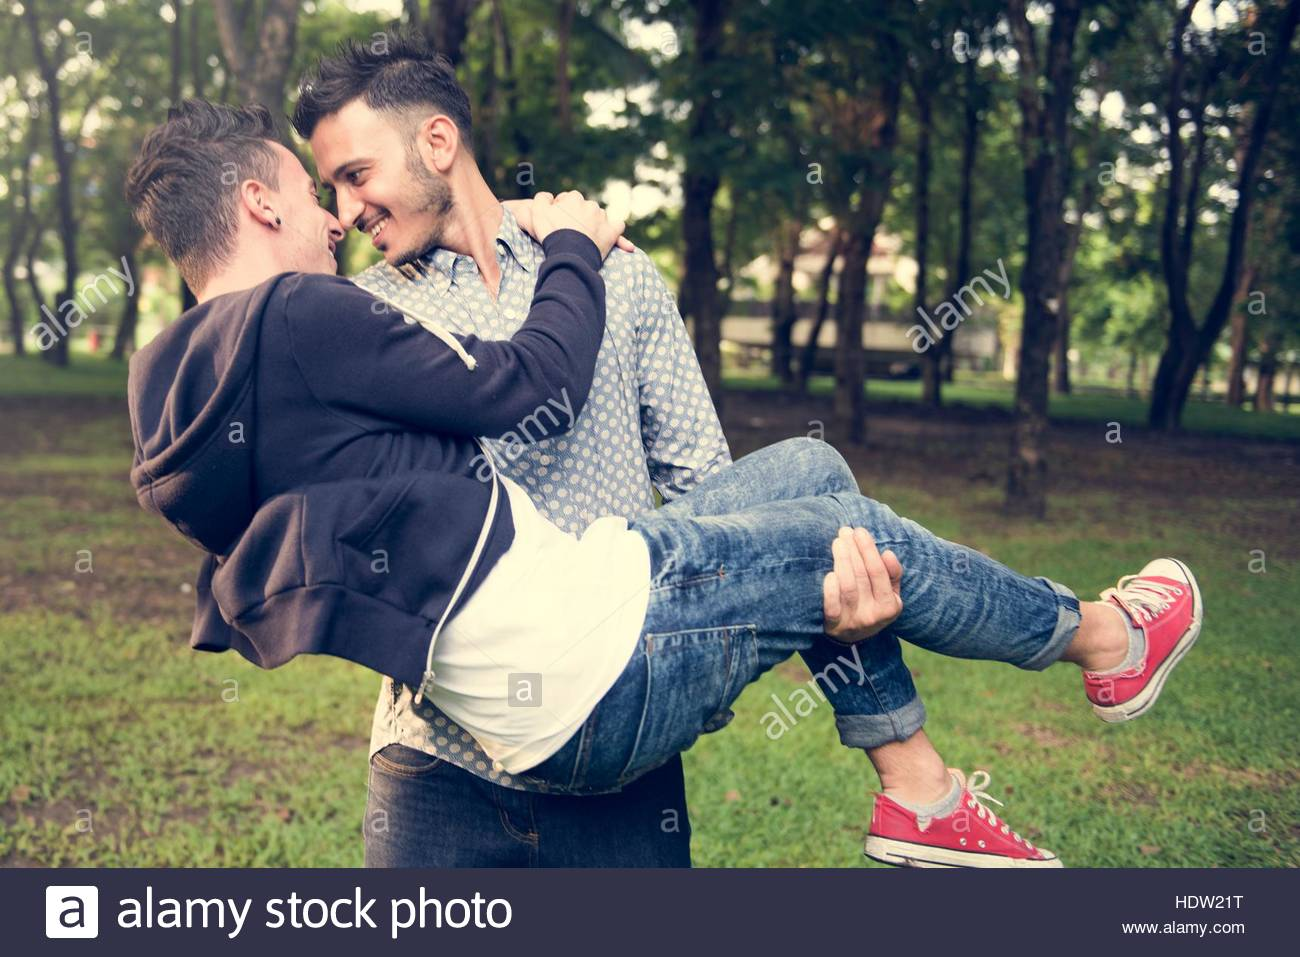 gay-couple-love-outdoors-concept-HDW21T.jpg